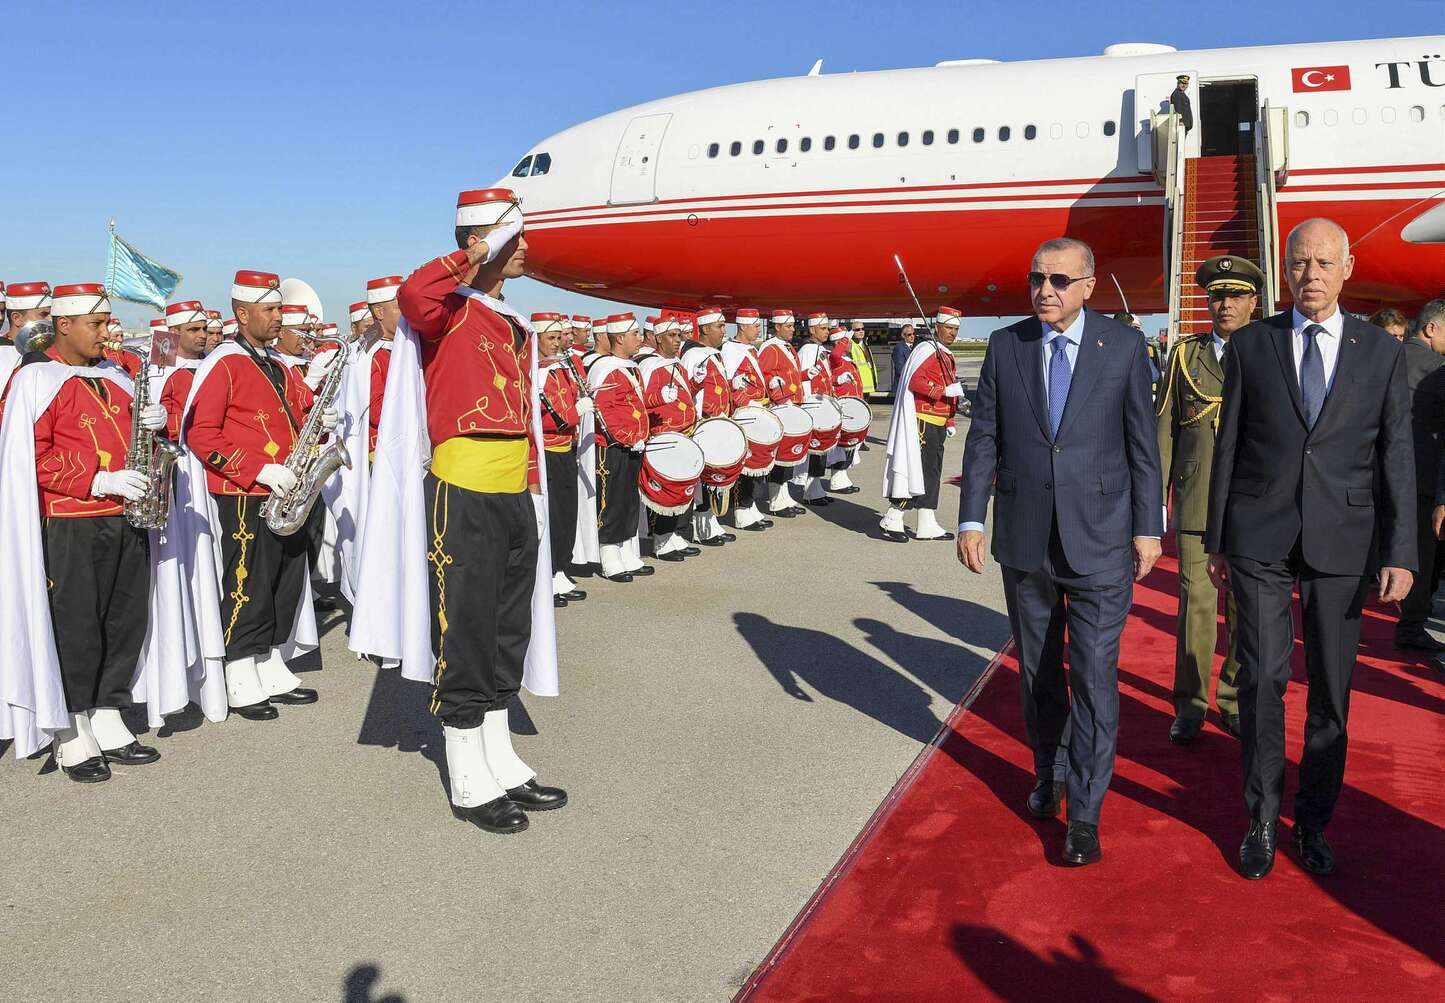 Turkey's President Recep Tayyip Erdogan, left, and Tunisian President Kais Saied, inspect a military honour guard at the airport, in Tunis, Tunisia, Wednesday, Dec. 25, 2019. (AP)